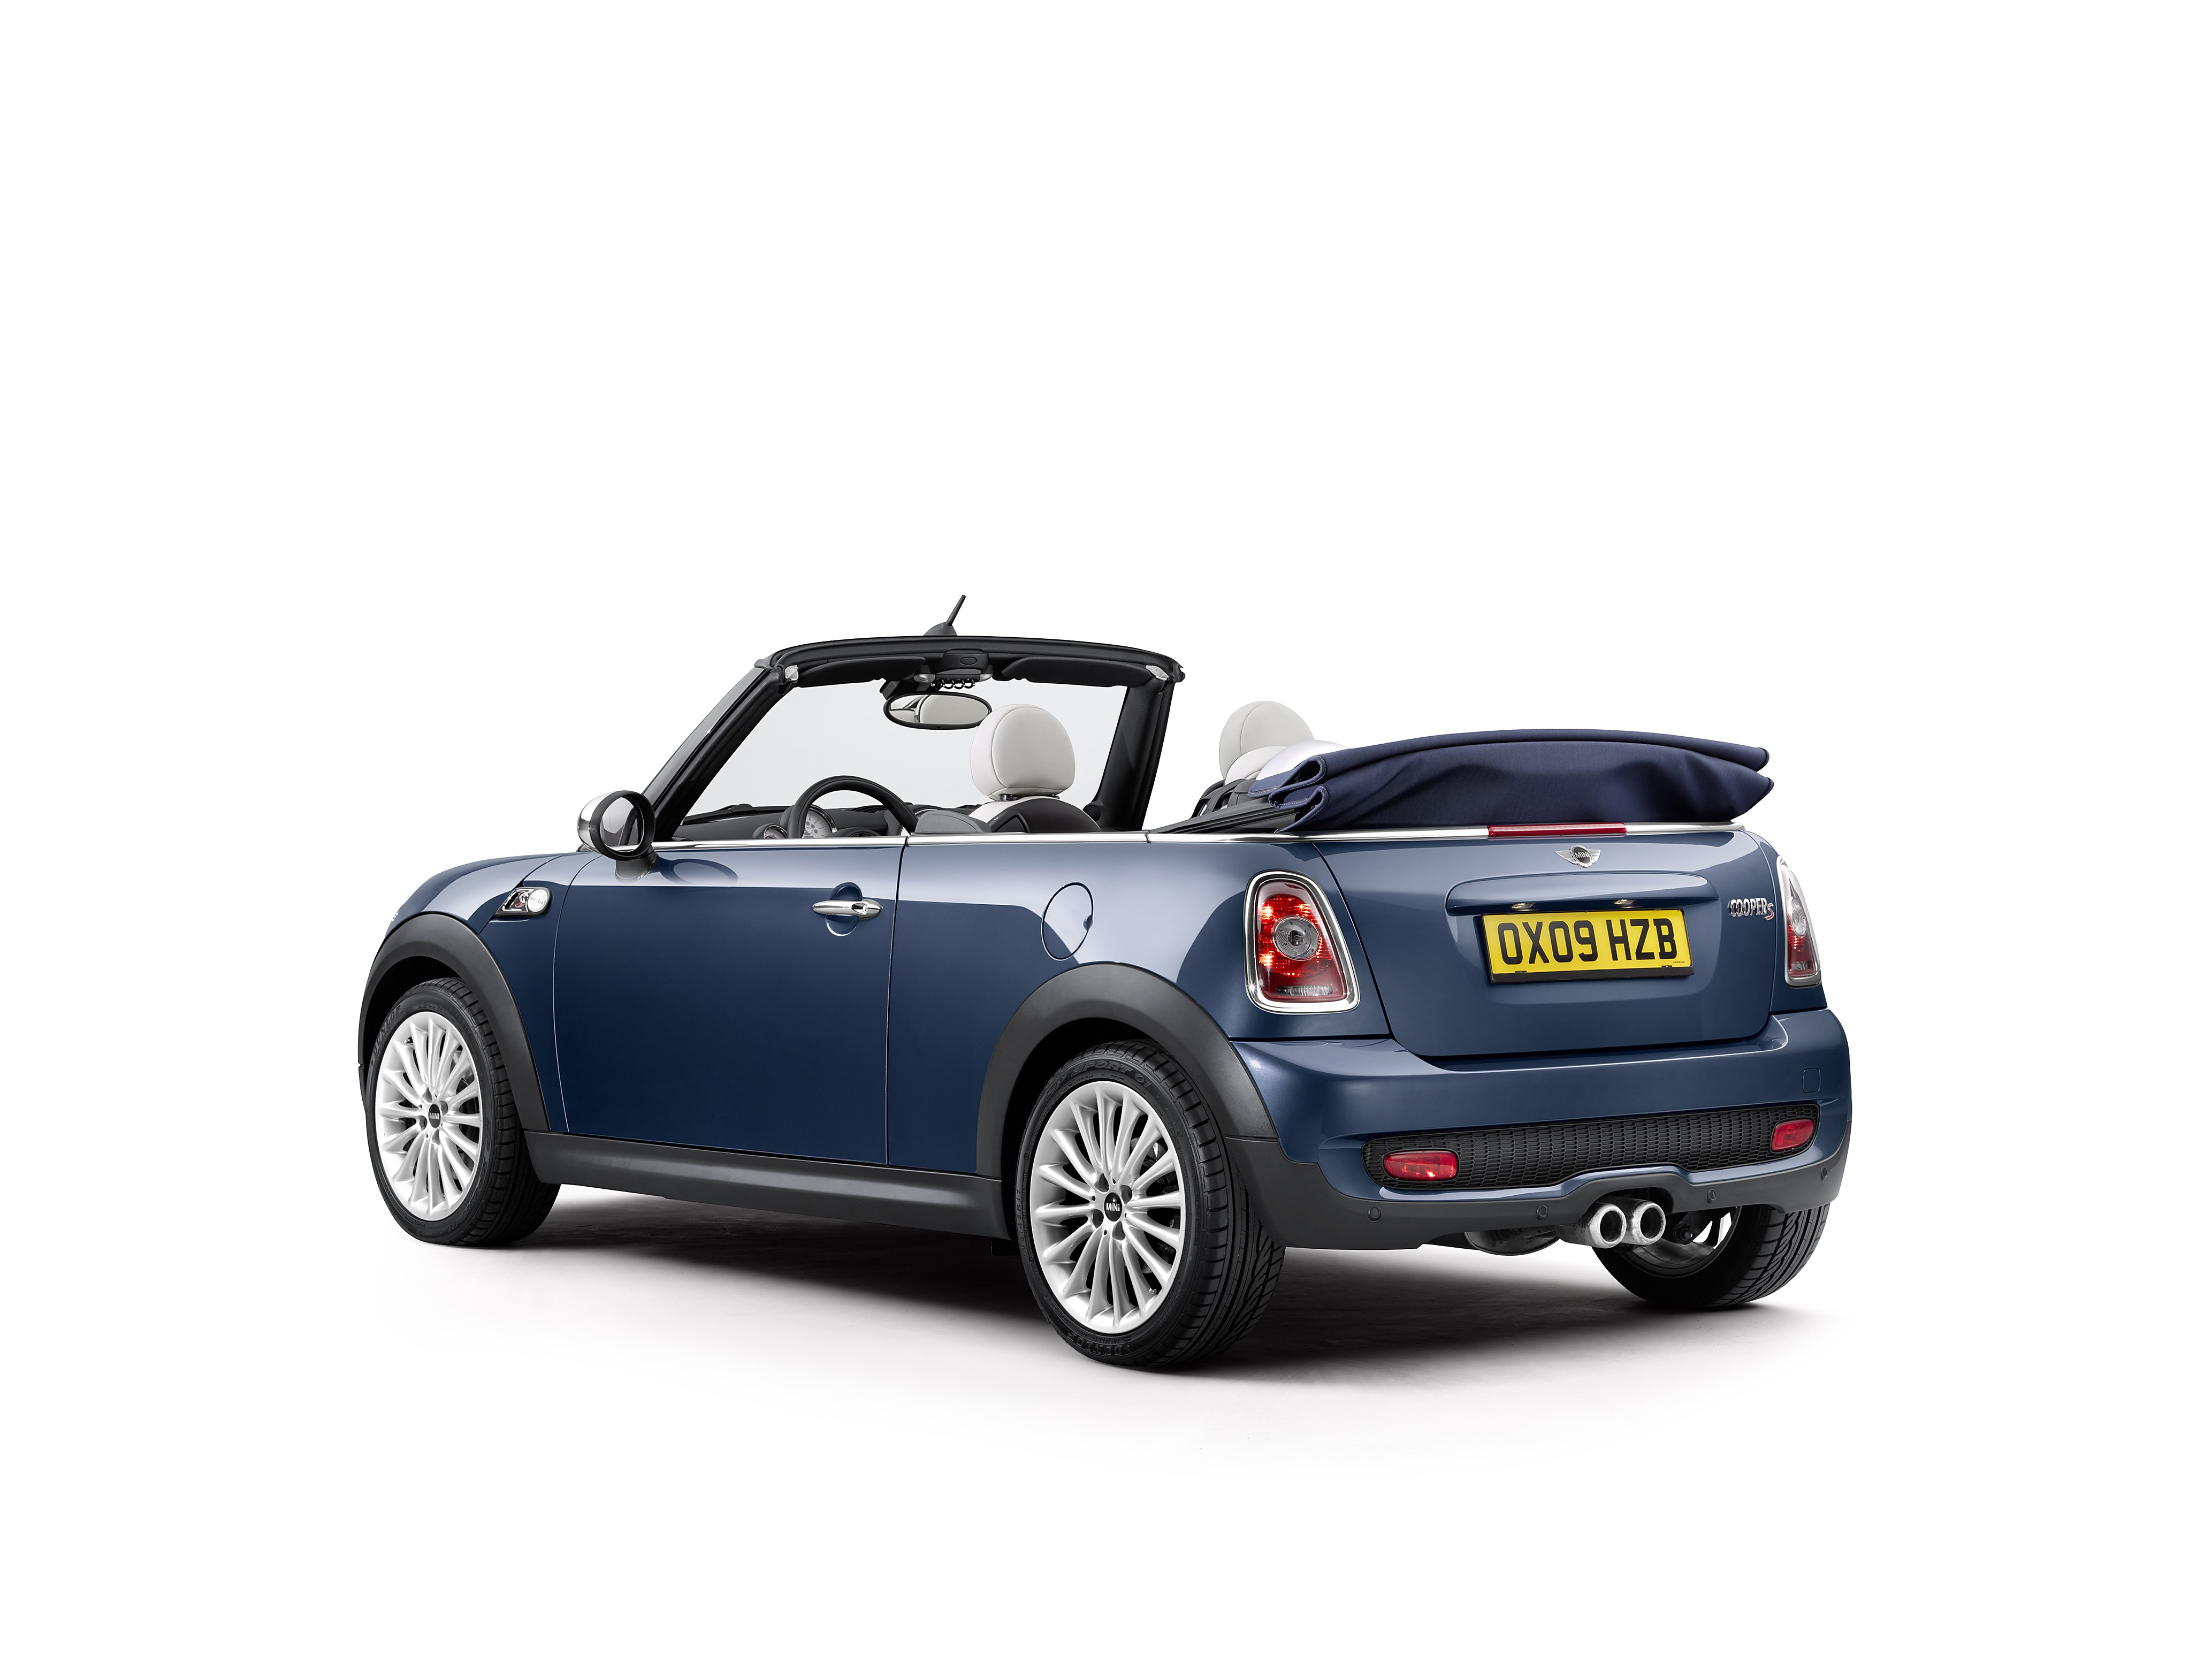 2008 MINI Cooper S Convertible Is a Modern Day Collectible